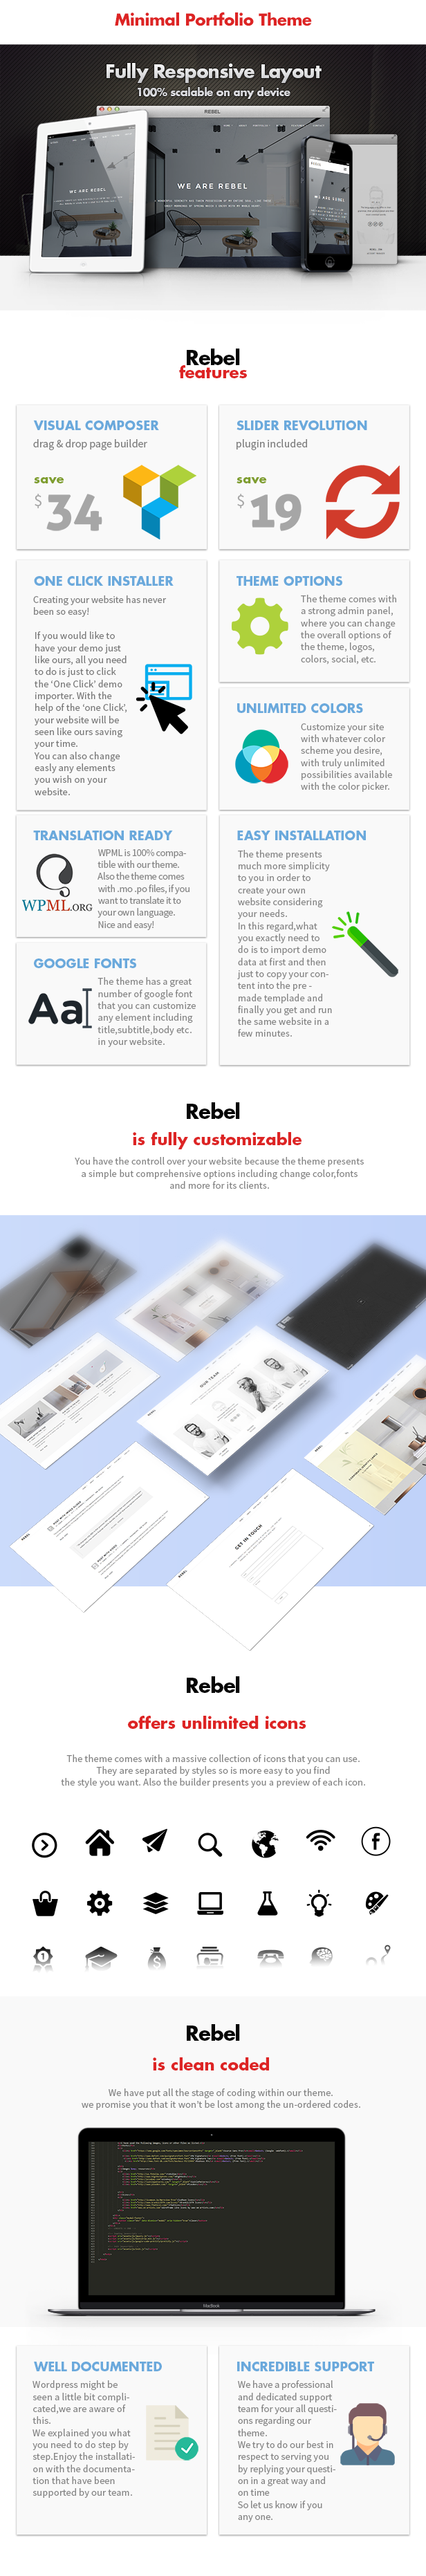 Rebel - Minimal Portfolio WordPress Theme - 6